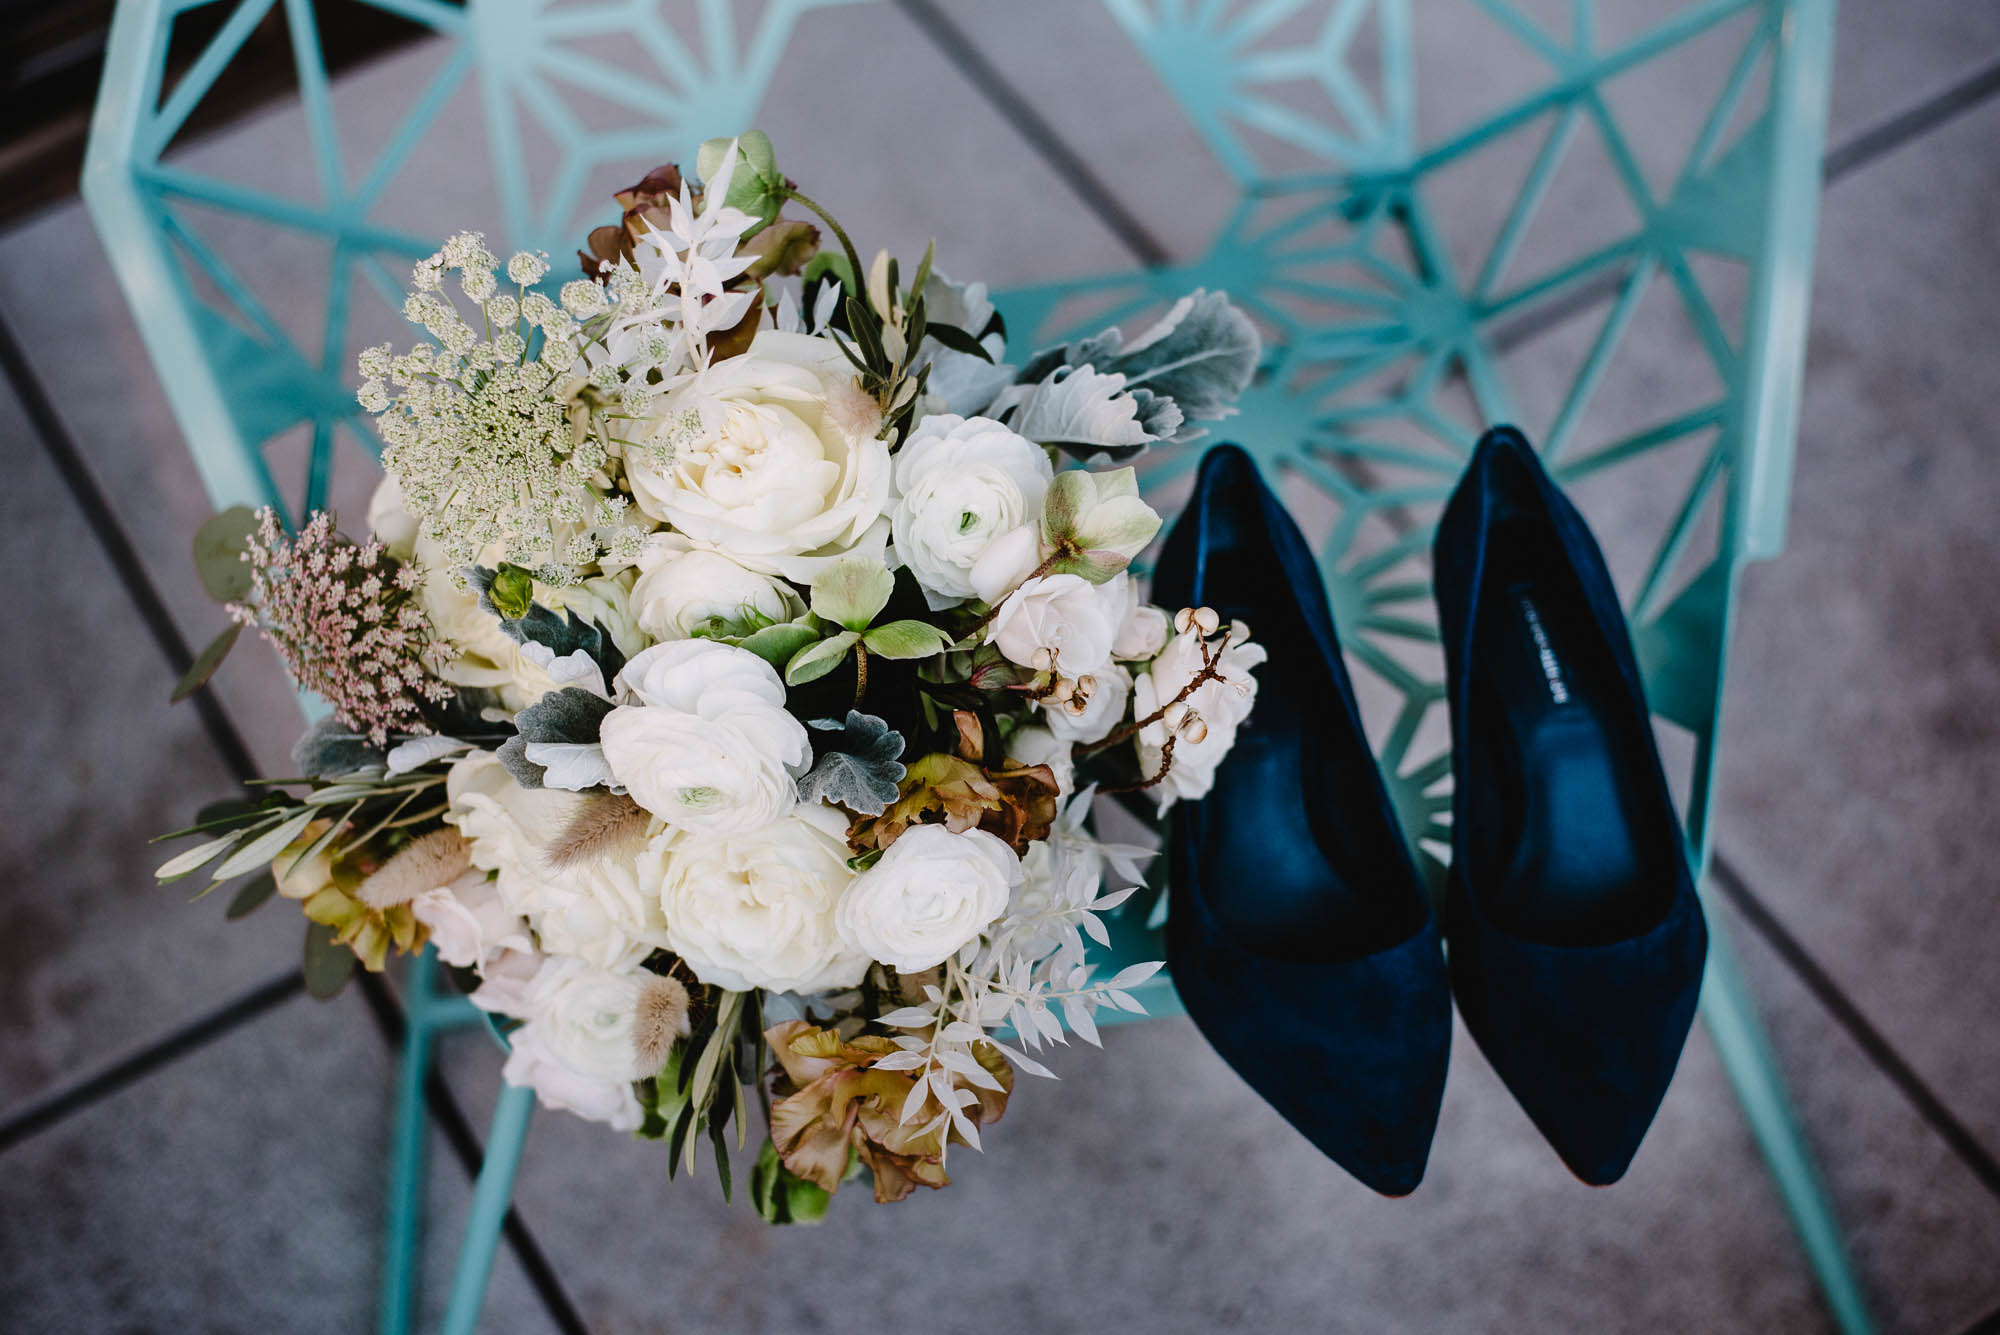 white bouquet with ranunculus and greenery next to a pair of navy blue wedding shoes at the south congress hotel in austin